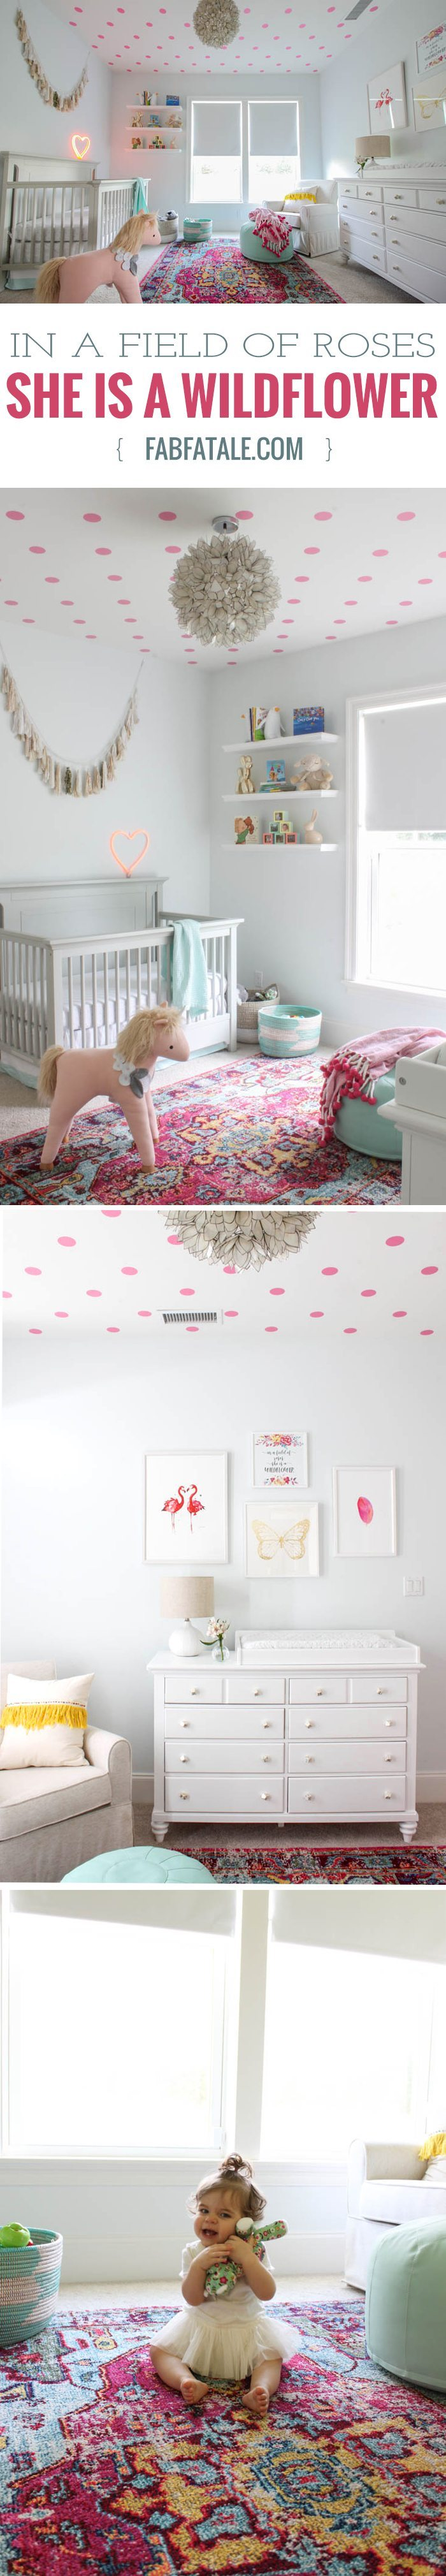 in a field of roses, she is a wildflower, that was the inspiration behind my baby girl nursery, featuring a lotus chandelier, pink polka dot decal ceiling, white dipped baskets, butterfly, flamingo, and feather prints, penguin bookends, and a unicorn. i love her magical space!